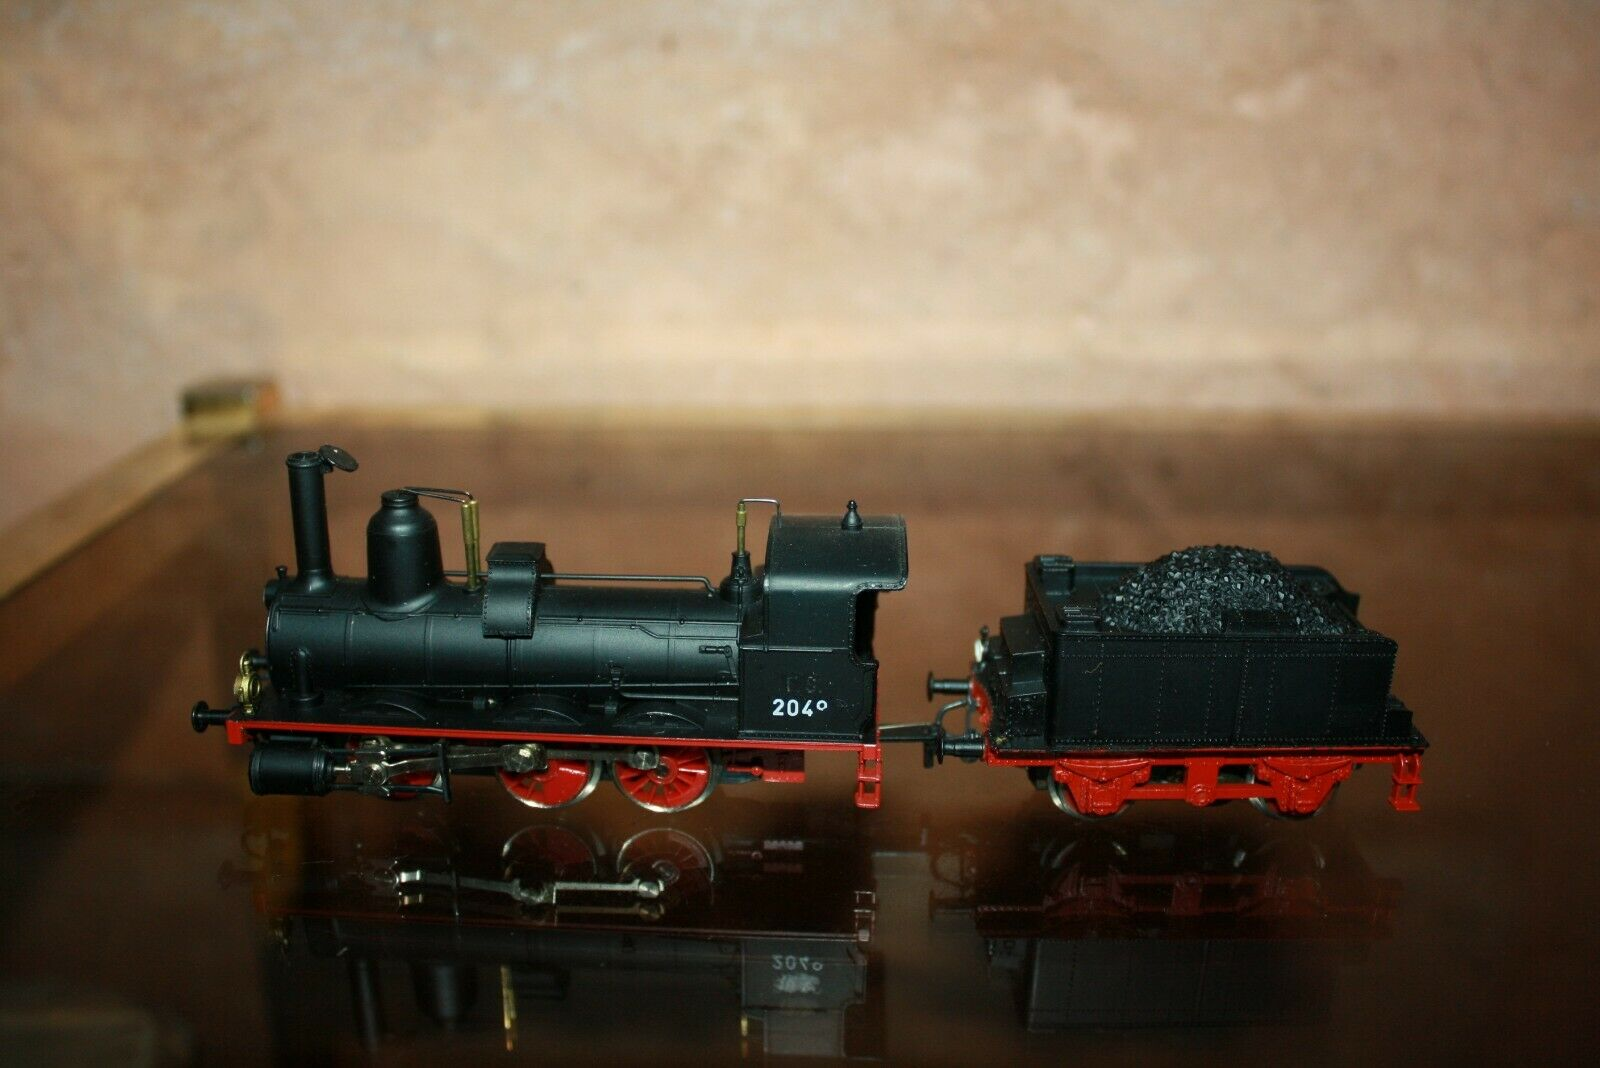 Rivarossi 2049 steam locomotive has oh